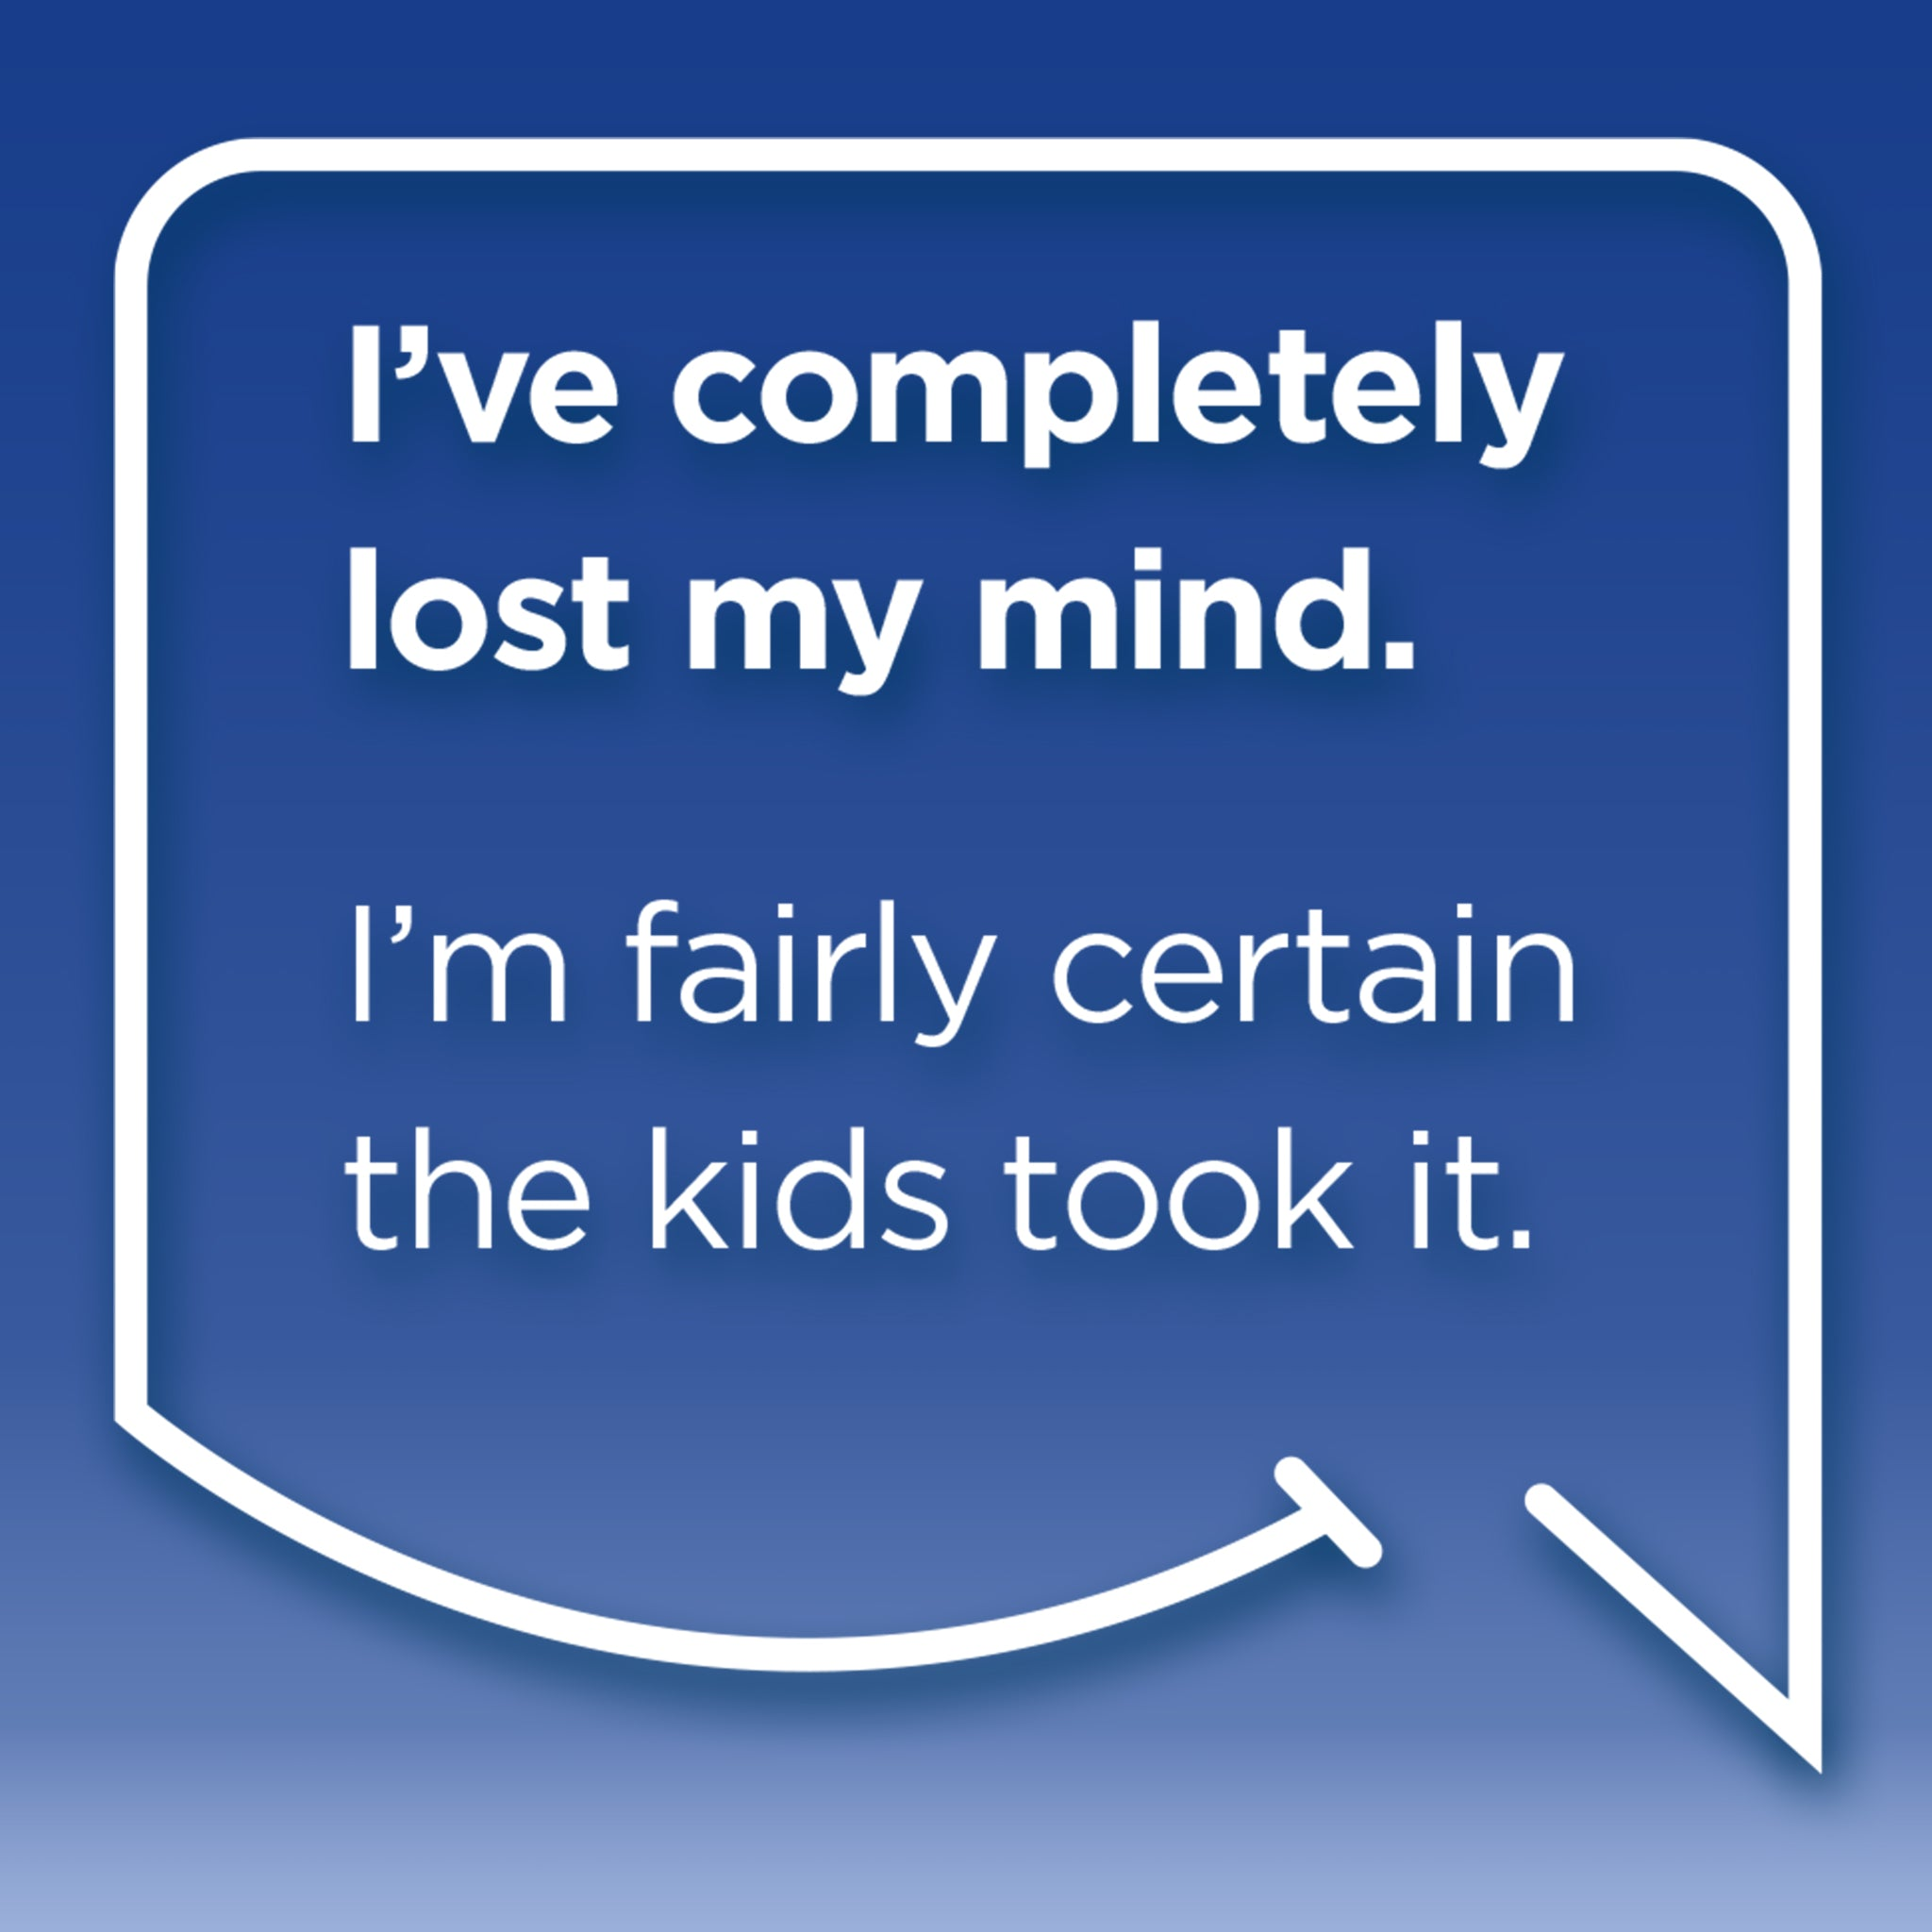 Funny Mom Quotes and Gifts: I've completely lost my mind. I'm fairly certain the kids took it.